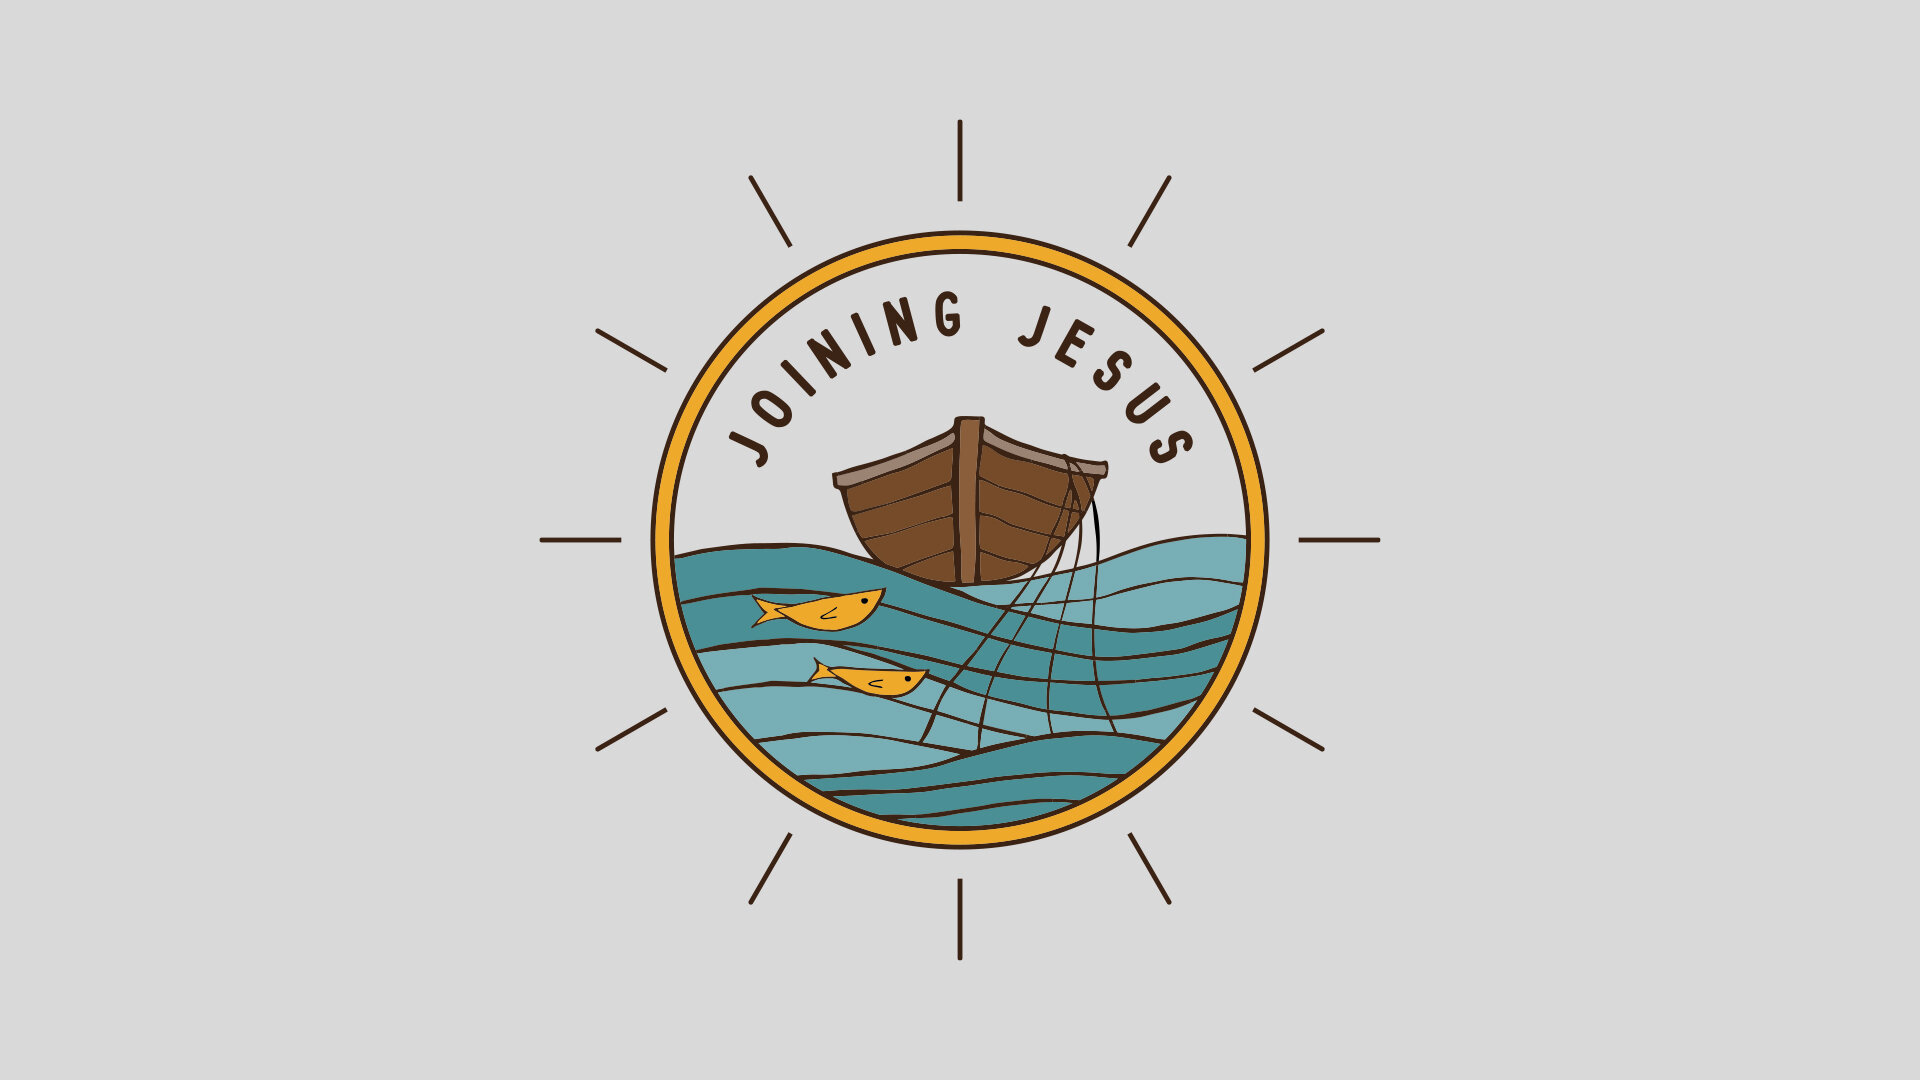 Let's join Jesus in the book of Mark this semester at the Beacon Campus Ministry.